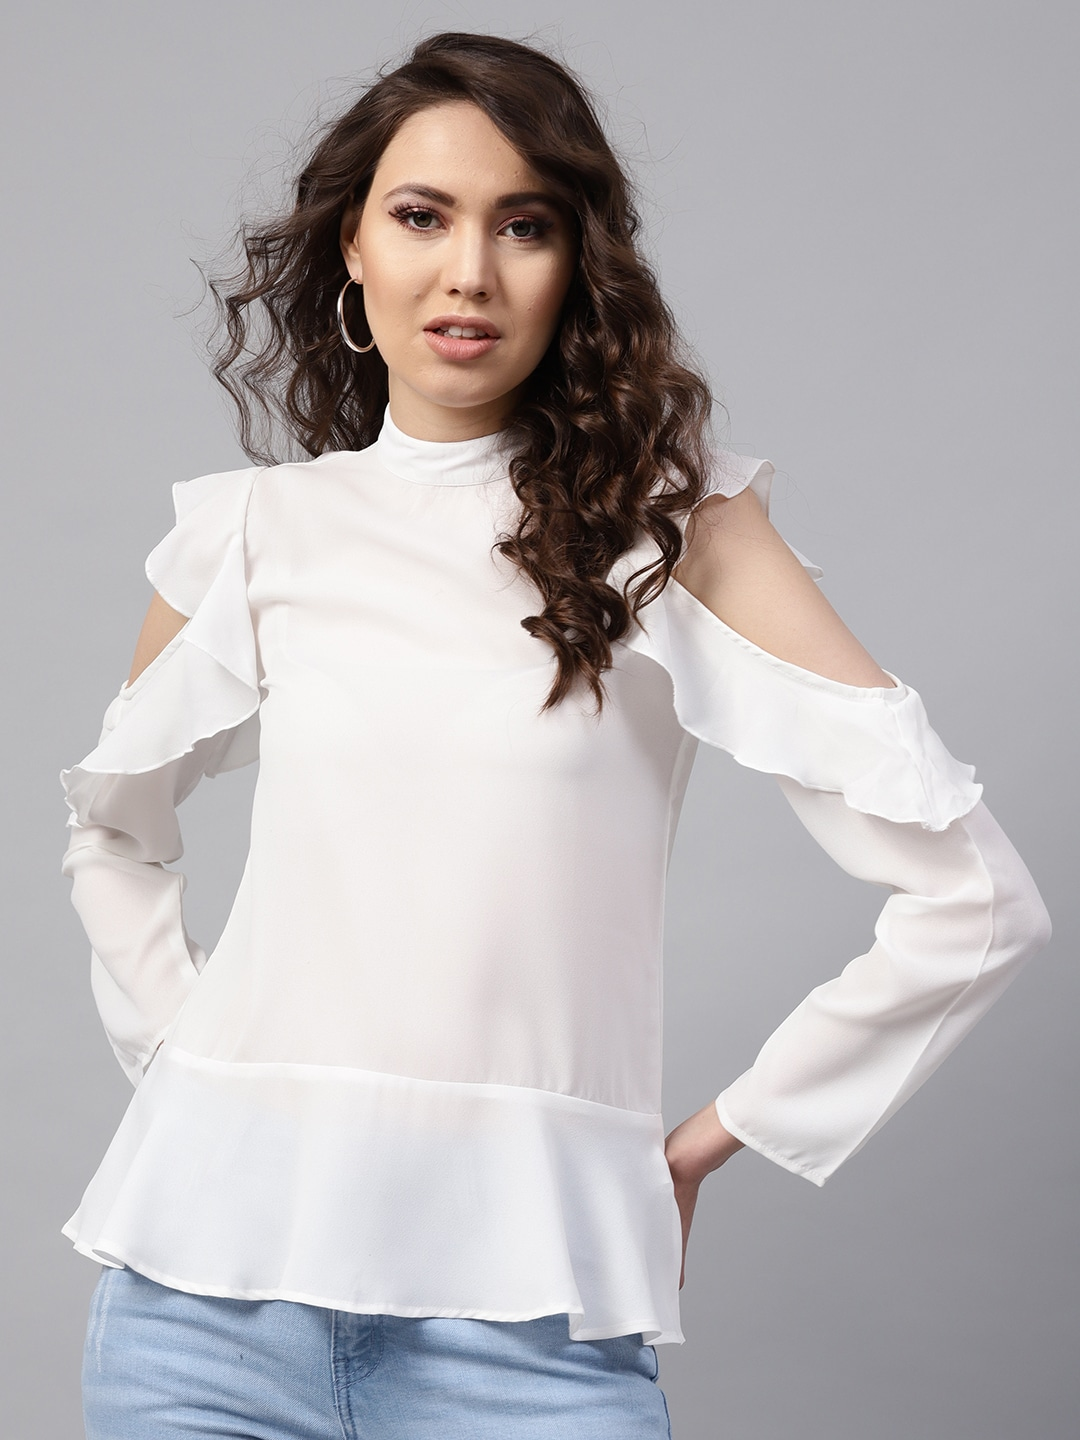 0d8f269f008 Cold Shoulder Tops - Buy Cold Shoulder Tops for Women Online - Myntra